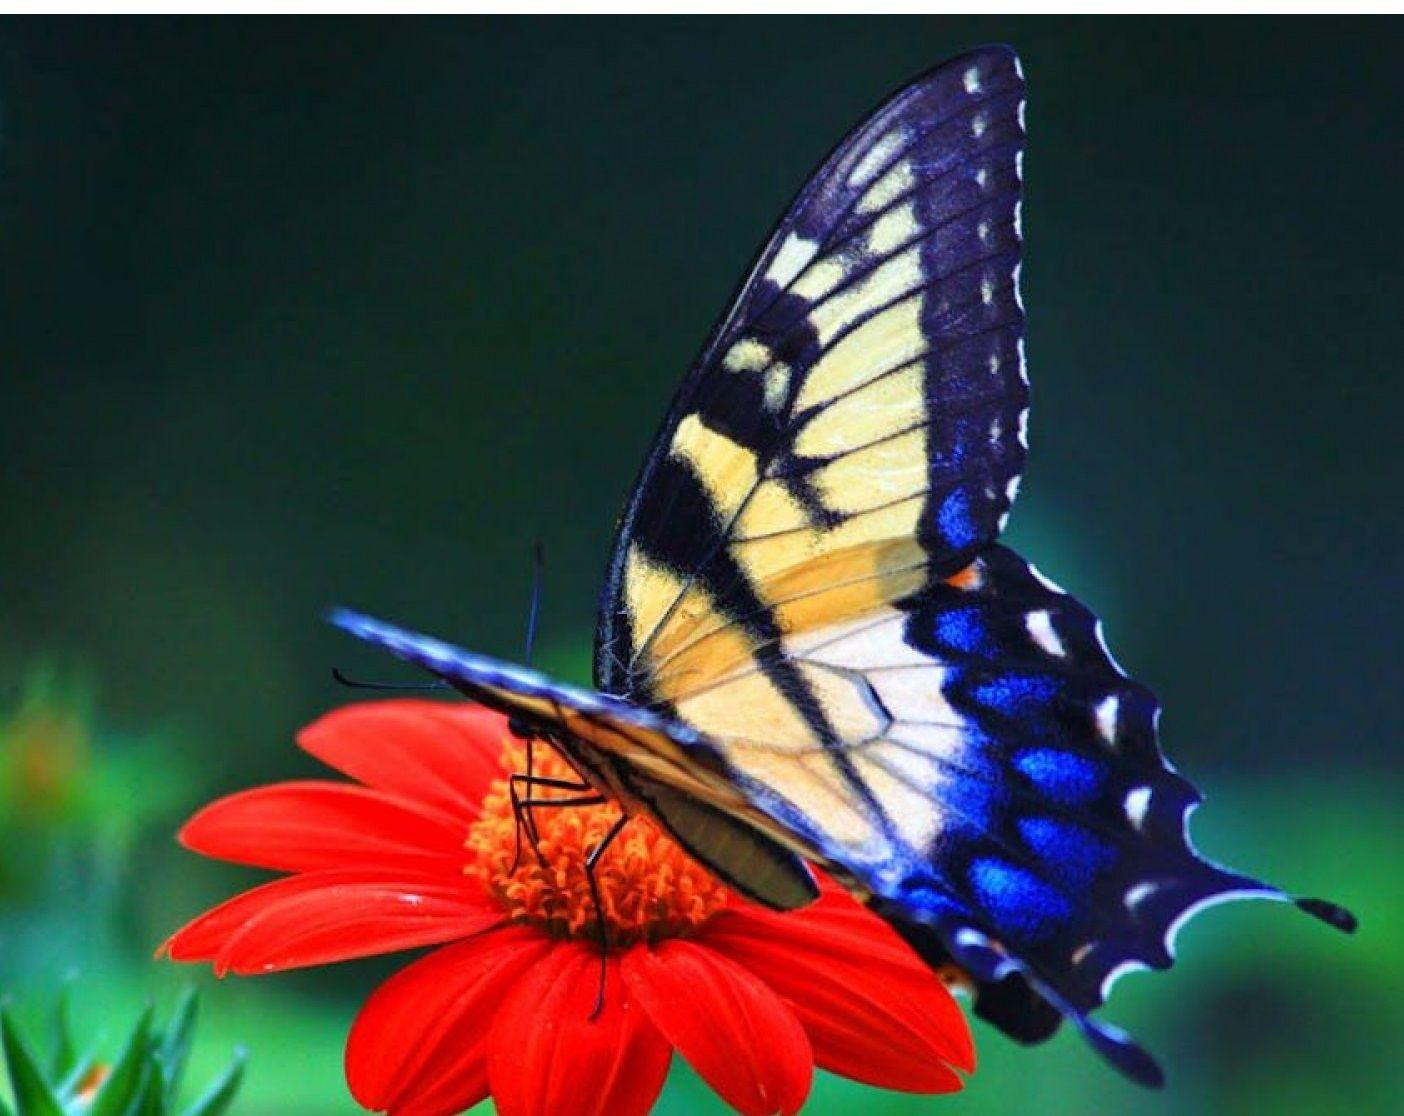 Cute Butterfly Wallpapers - Wallpaper Cave